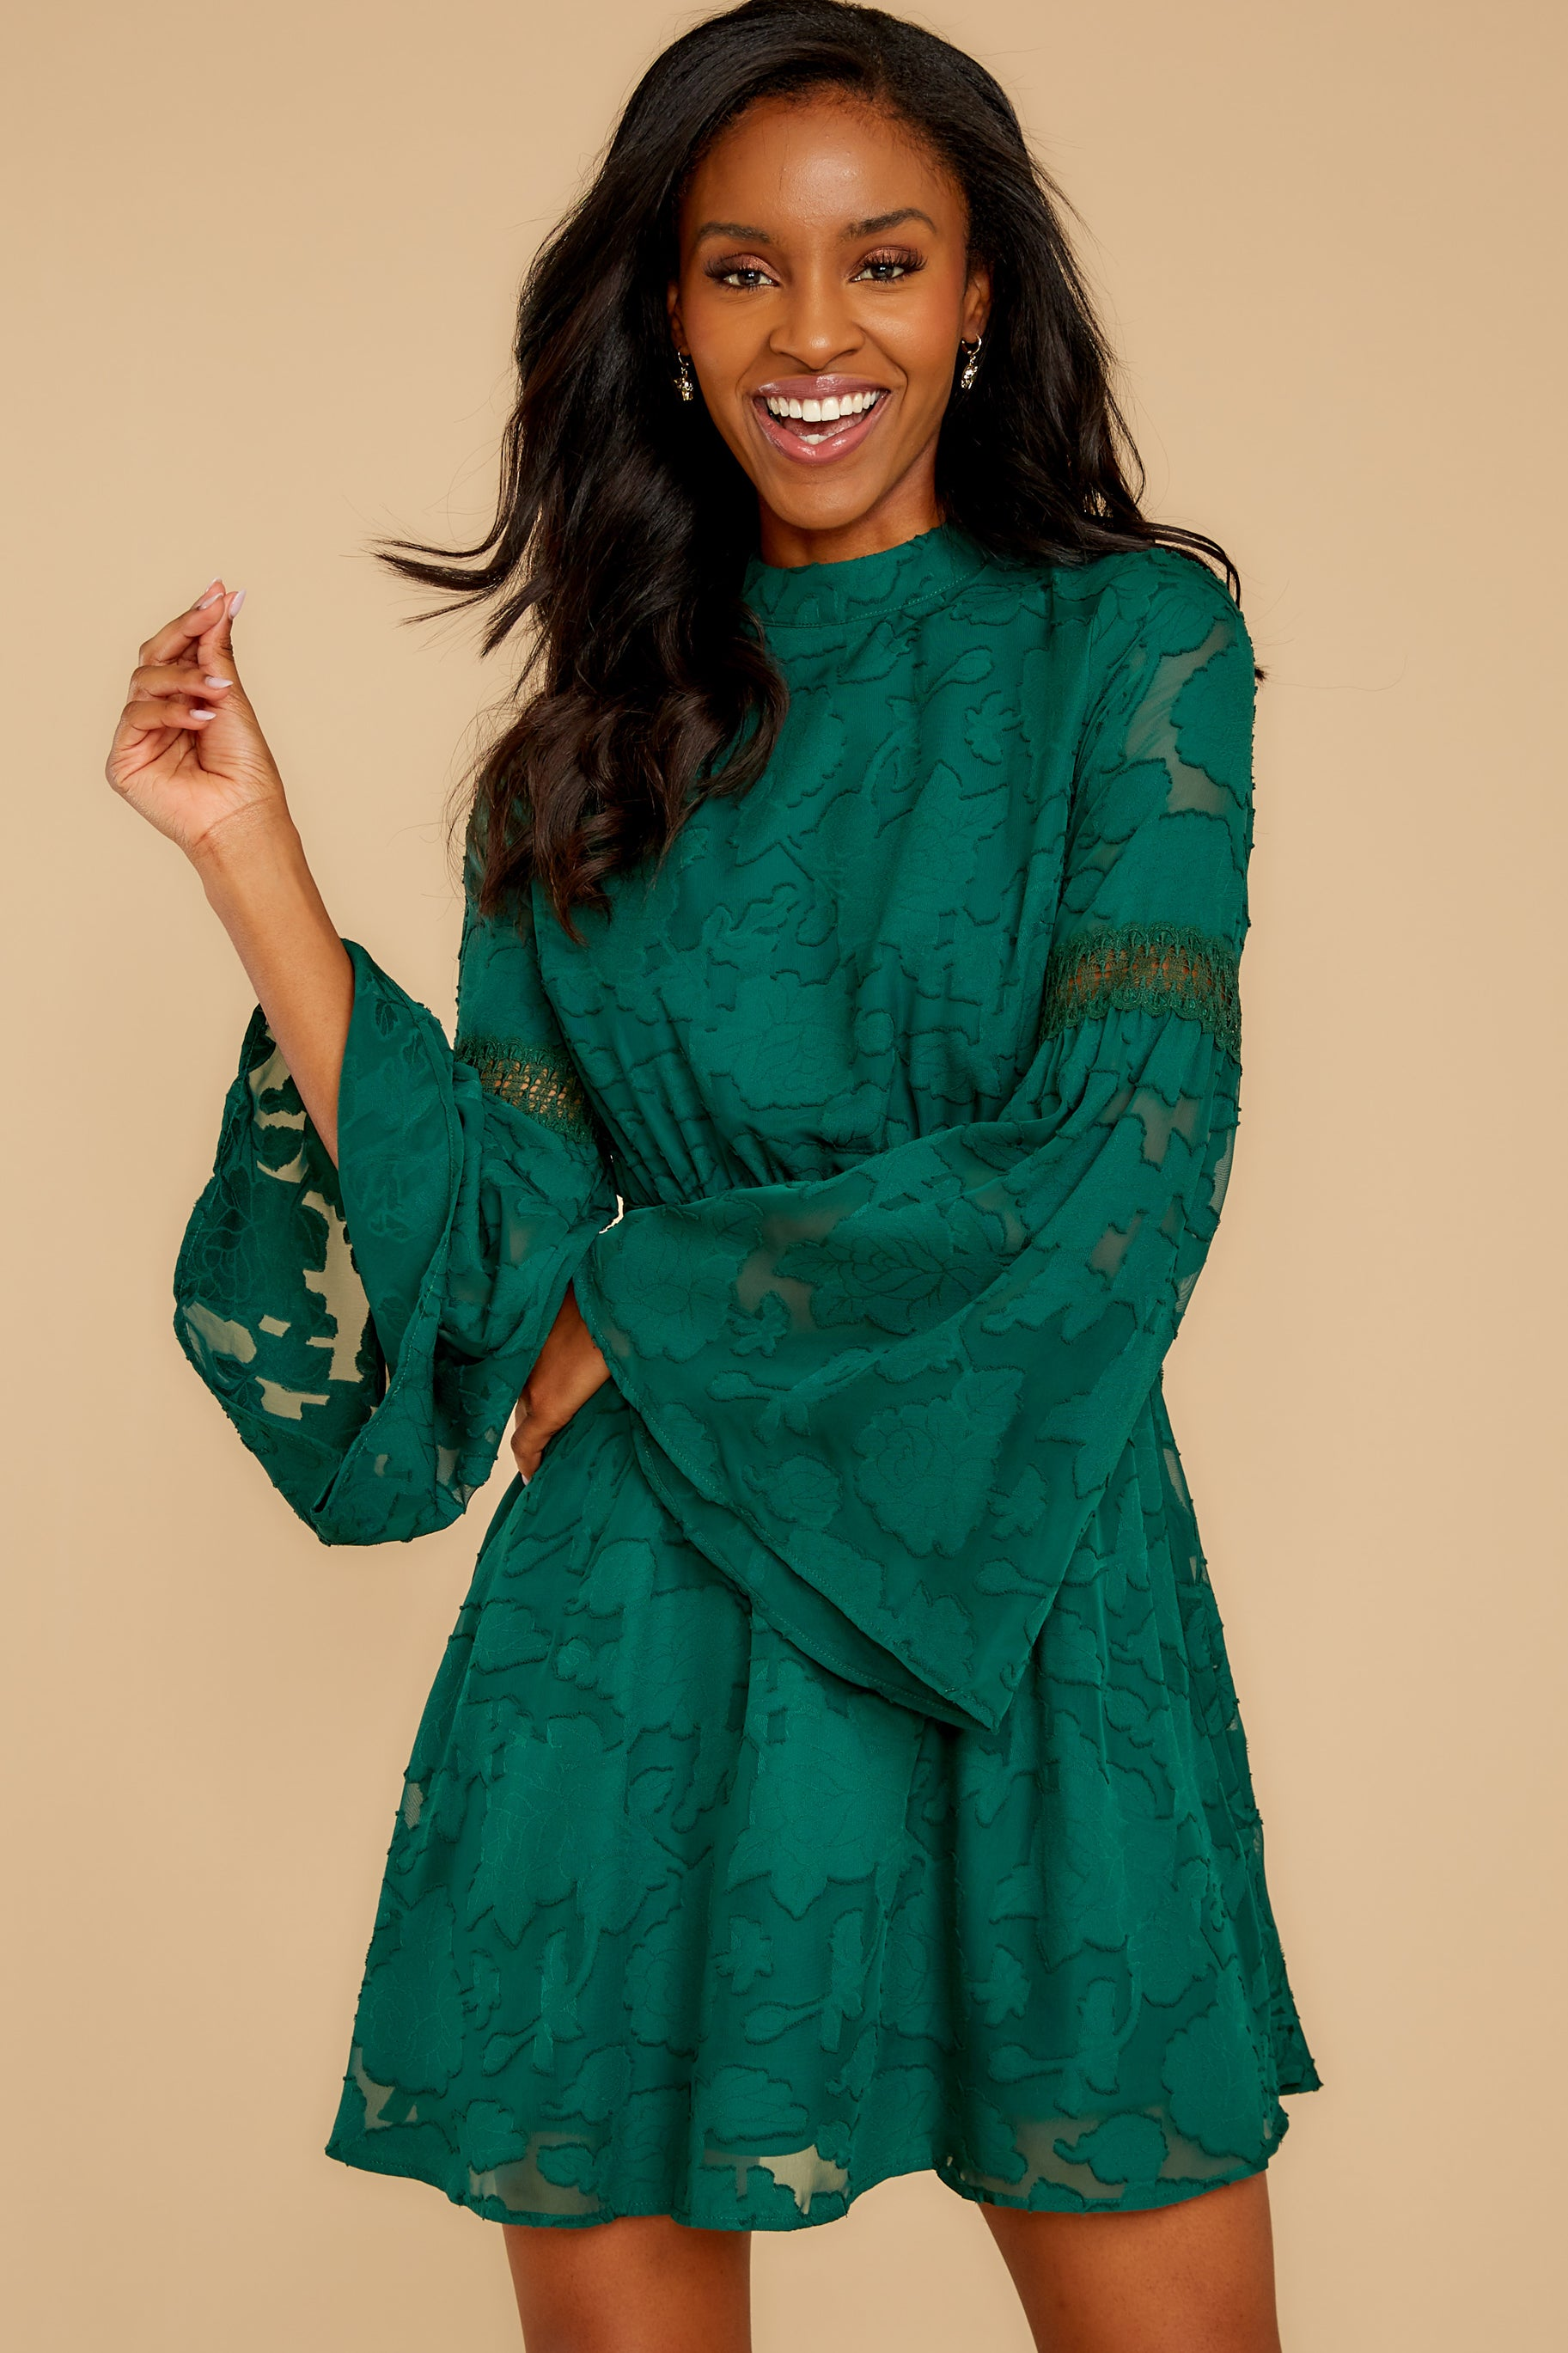 7 Love You More Emerald Green Lace Dress at reddressboutique.com